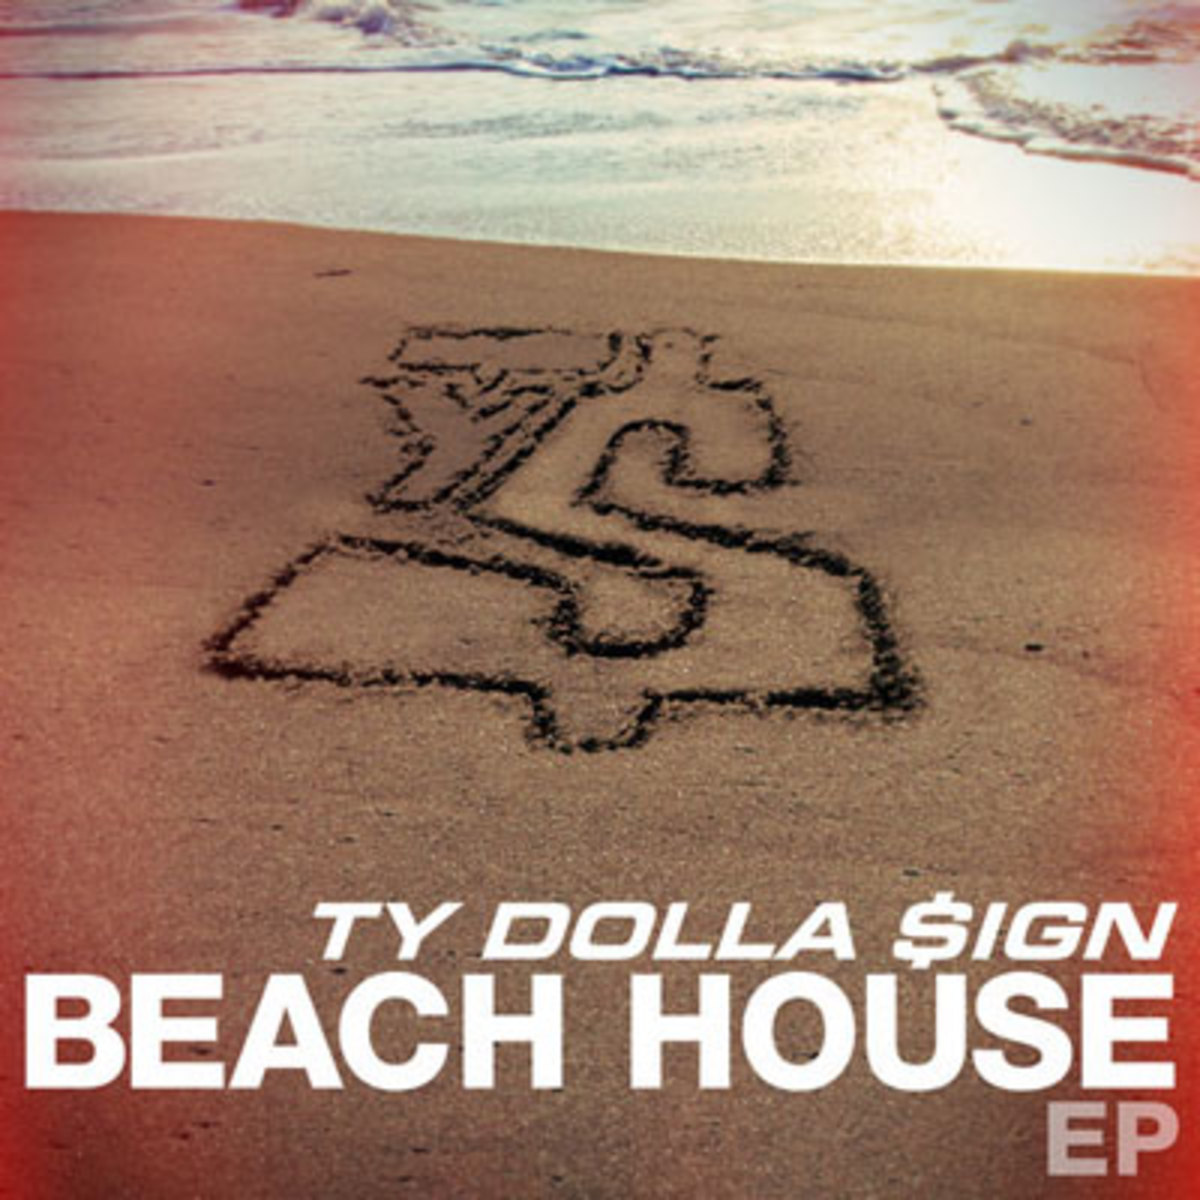 tydollasign-beachhouseep.jpg